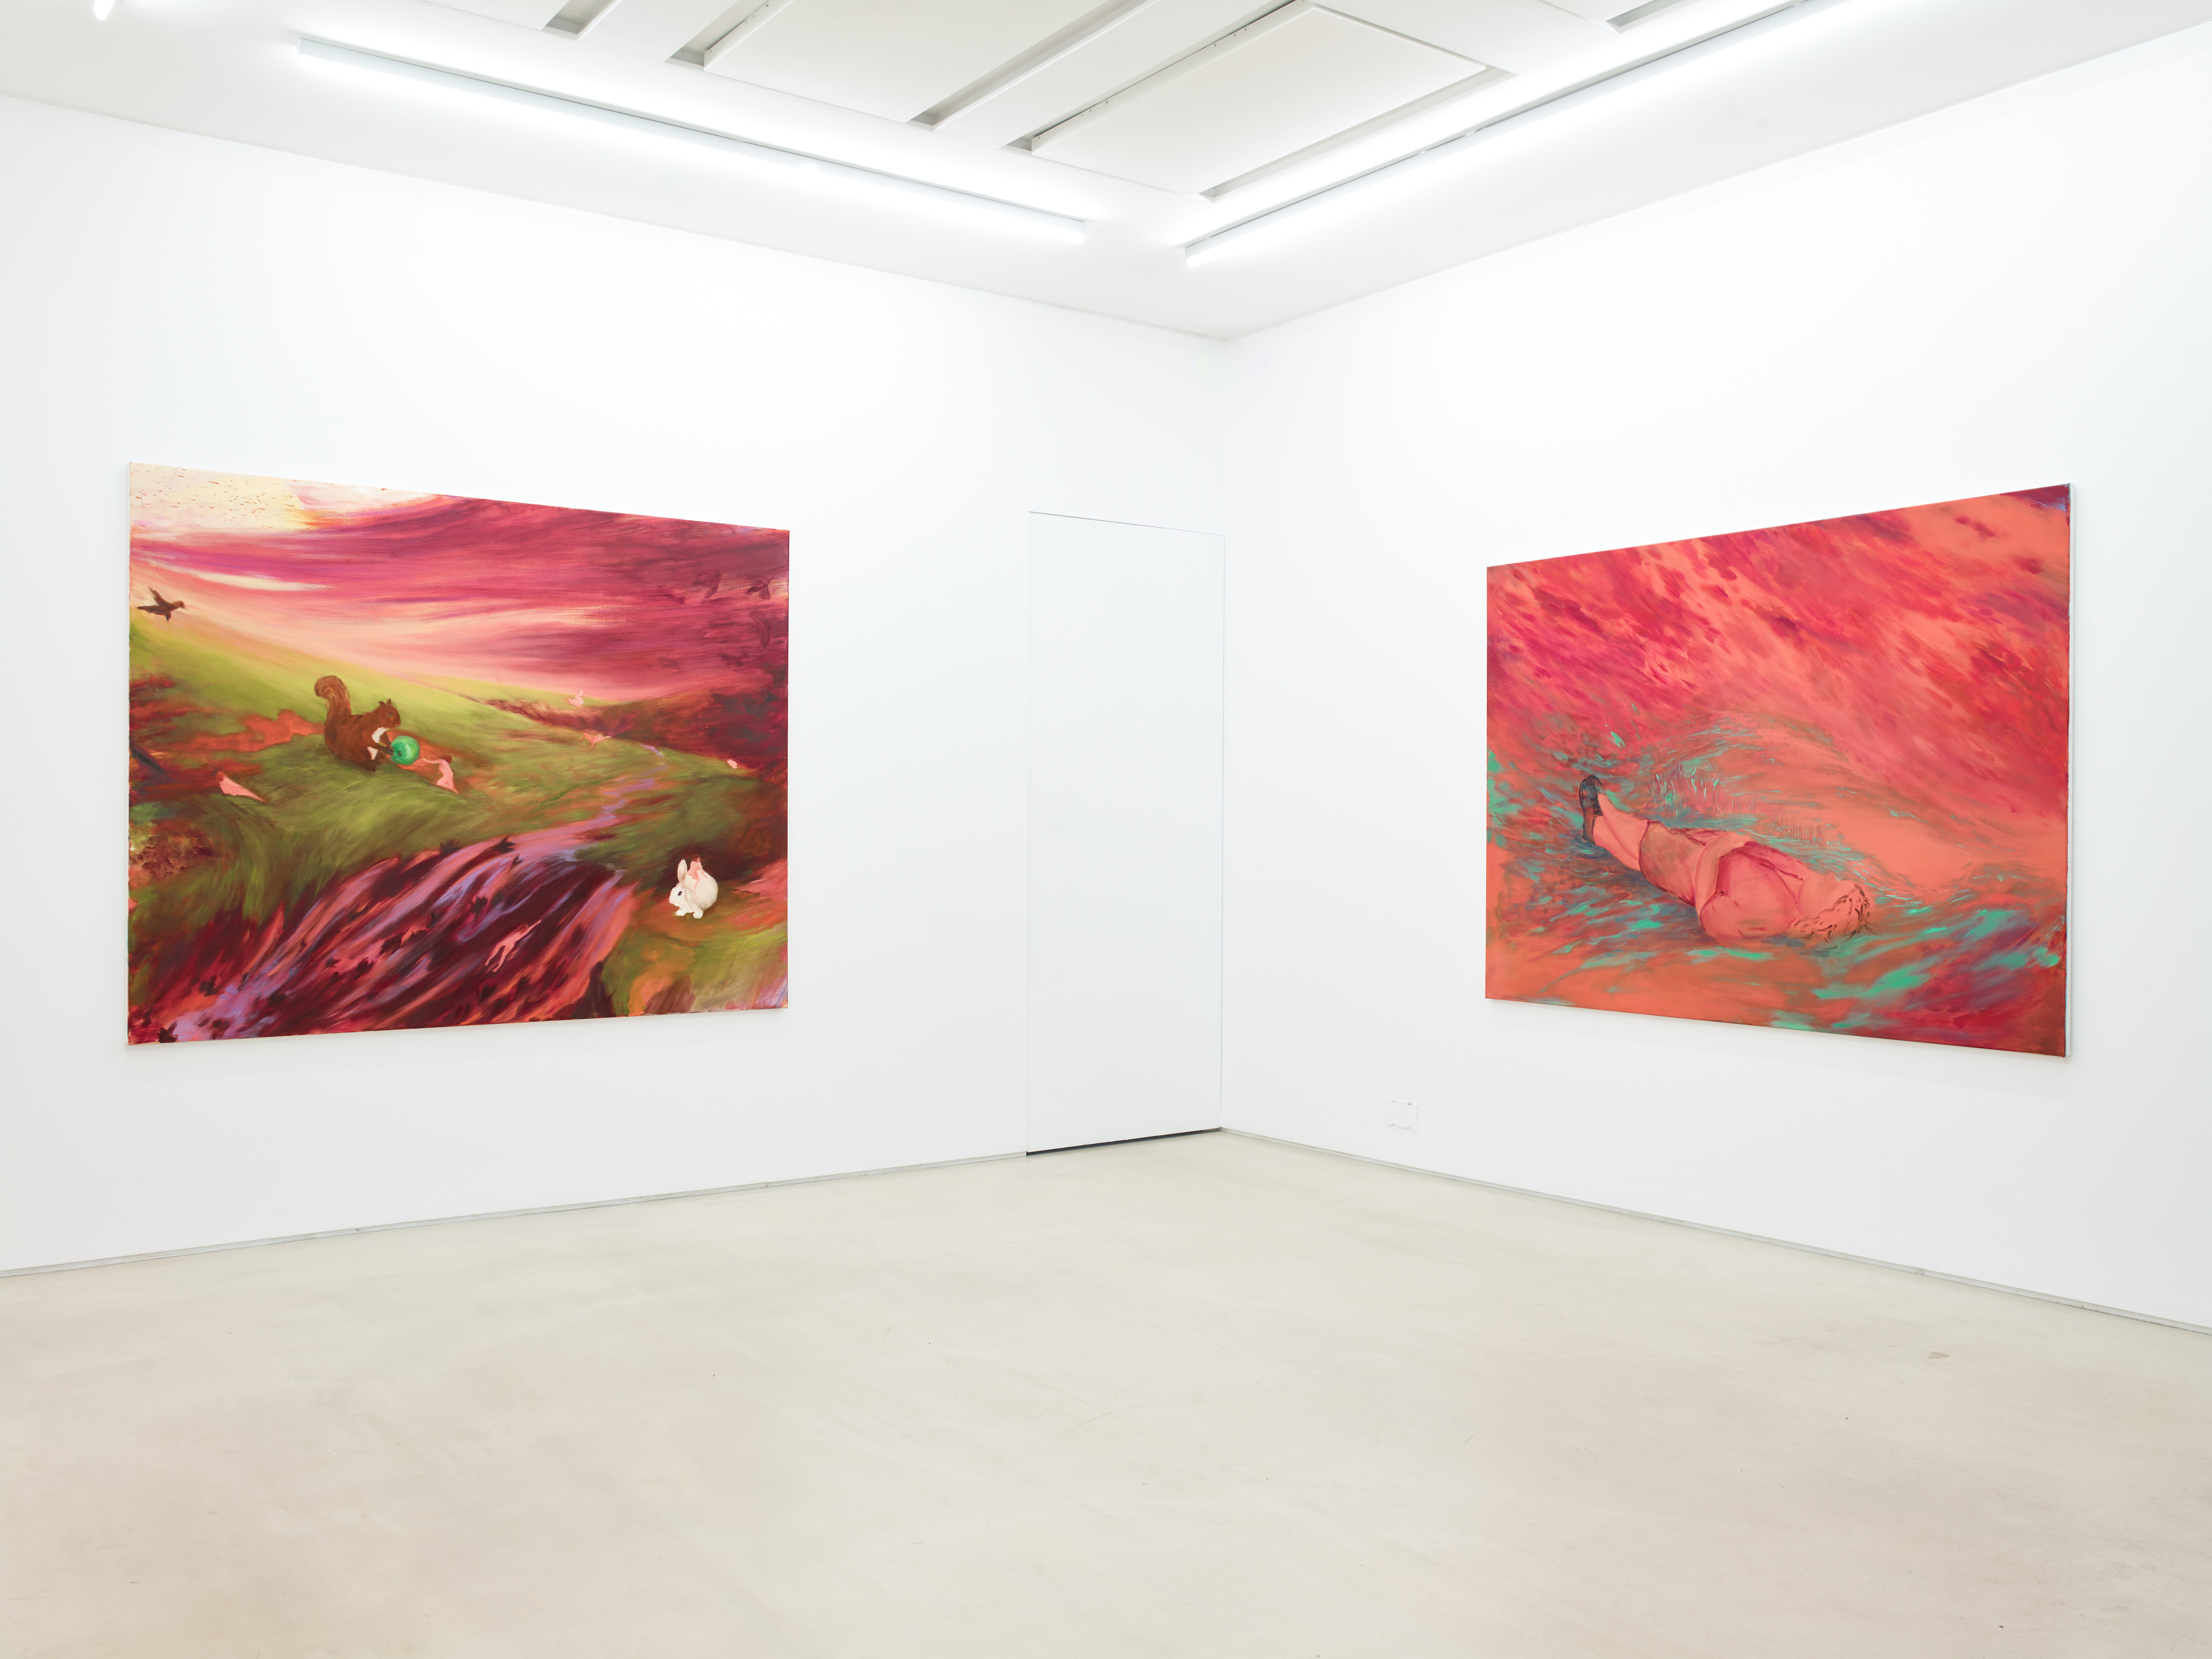 Acme 2021 Showcase. Installation view: Left: Amy Steel, 'The Days Eye', 2020; Right: Amy Steel, 'Not Five Minutes From Home', 2020. Image credit to Stephen Watts & Co and Courtesy of PEER, London.